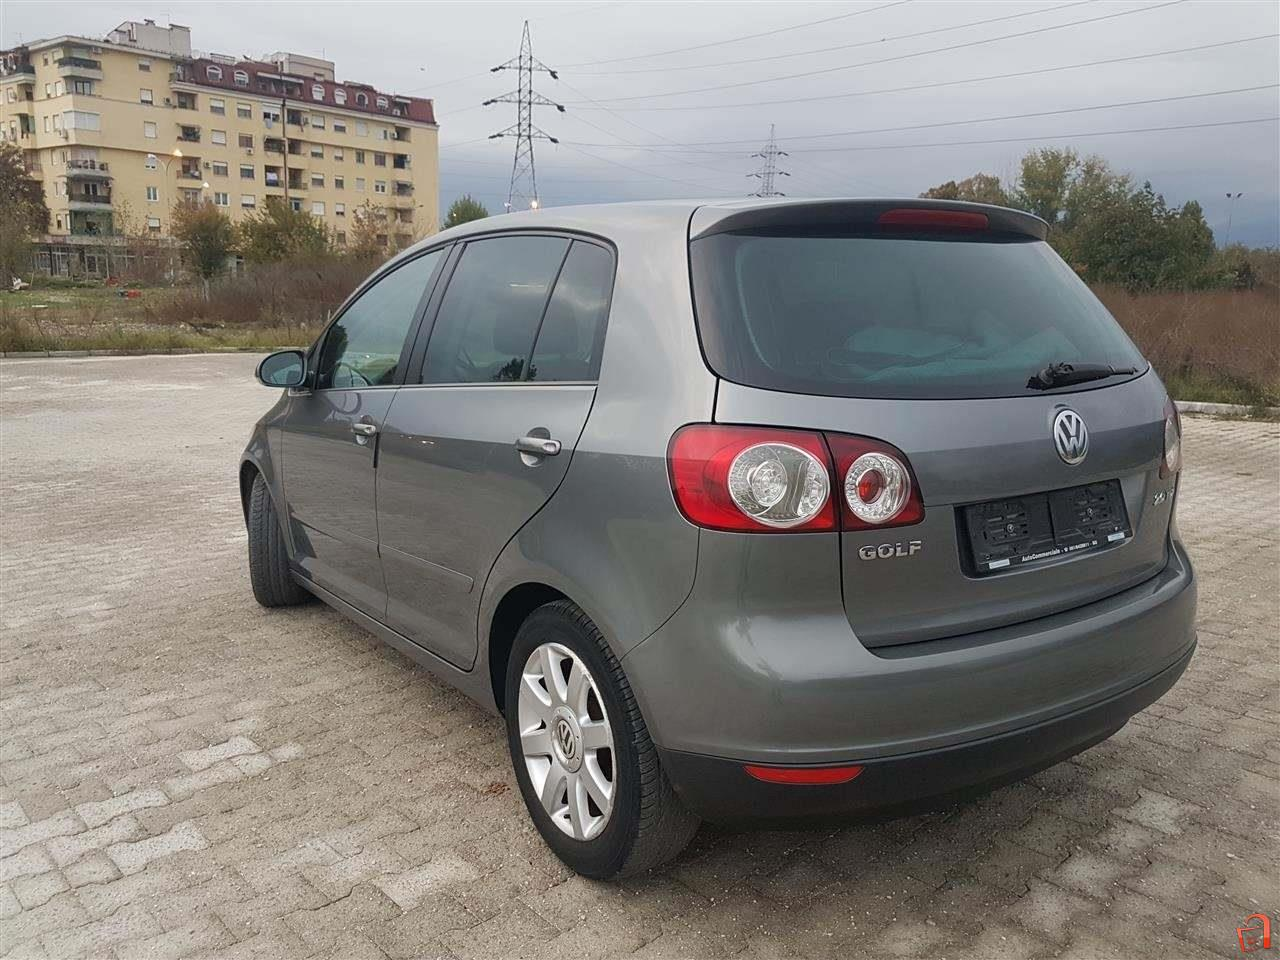 ad vw golf 5 plus 2 0 tdi 103 sportline 05 for sale skopje butel vehicles. Black Bedroom Furniture Sets. Home Design Ideas